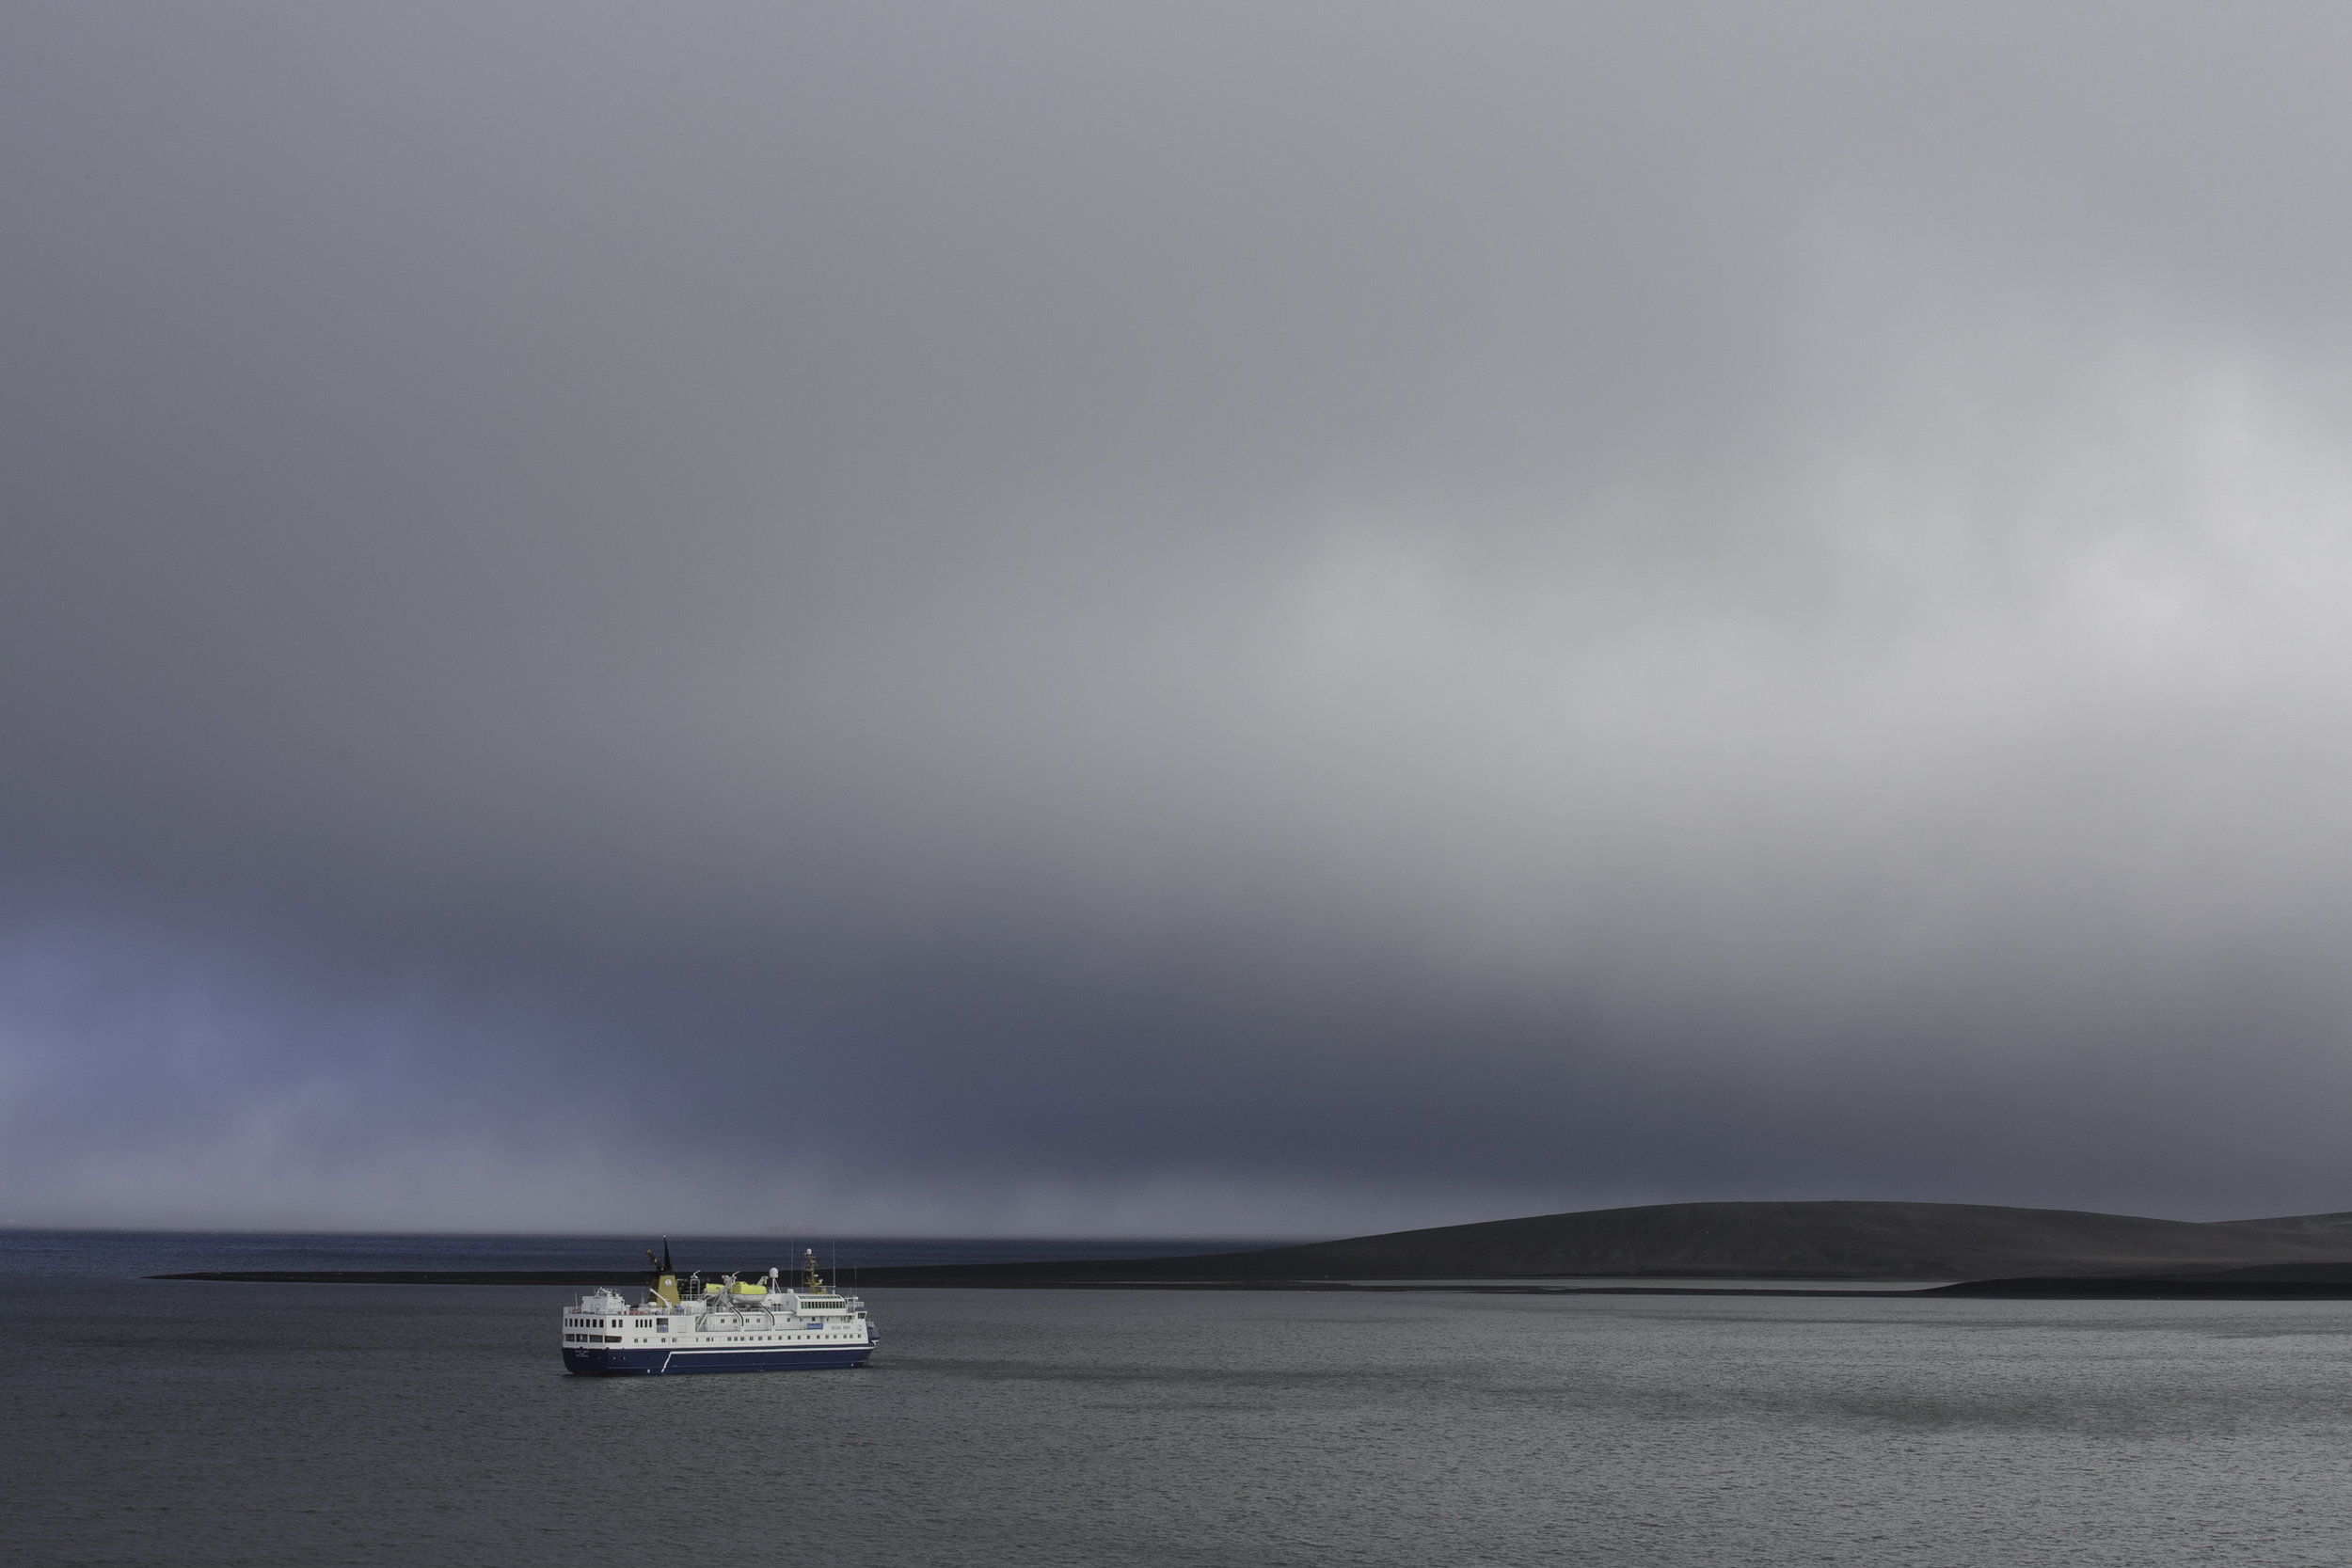 Ocean Nova at anchor in the caldera of the live volcano that is Deception Island.